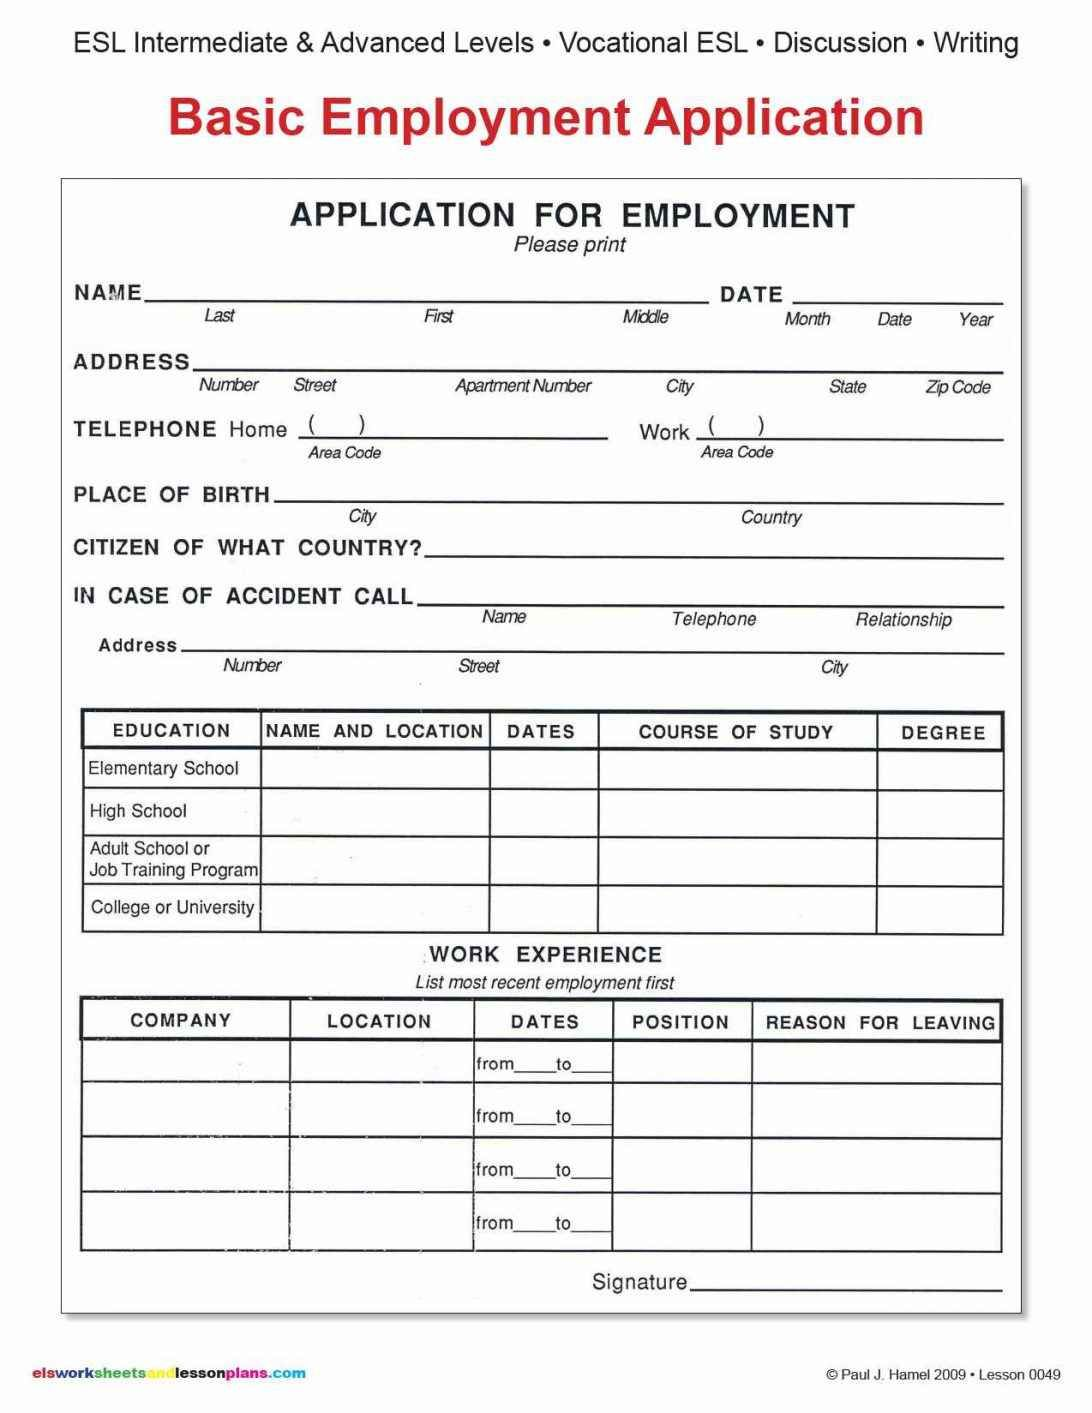 On The Job Training Pdf And Examples Of On The Job Training Programs The Most Importan Printable Job Applications Employment Application Job Application Form